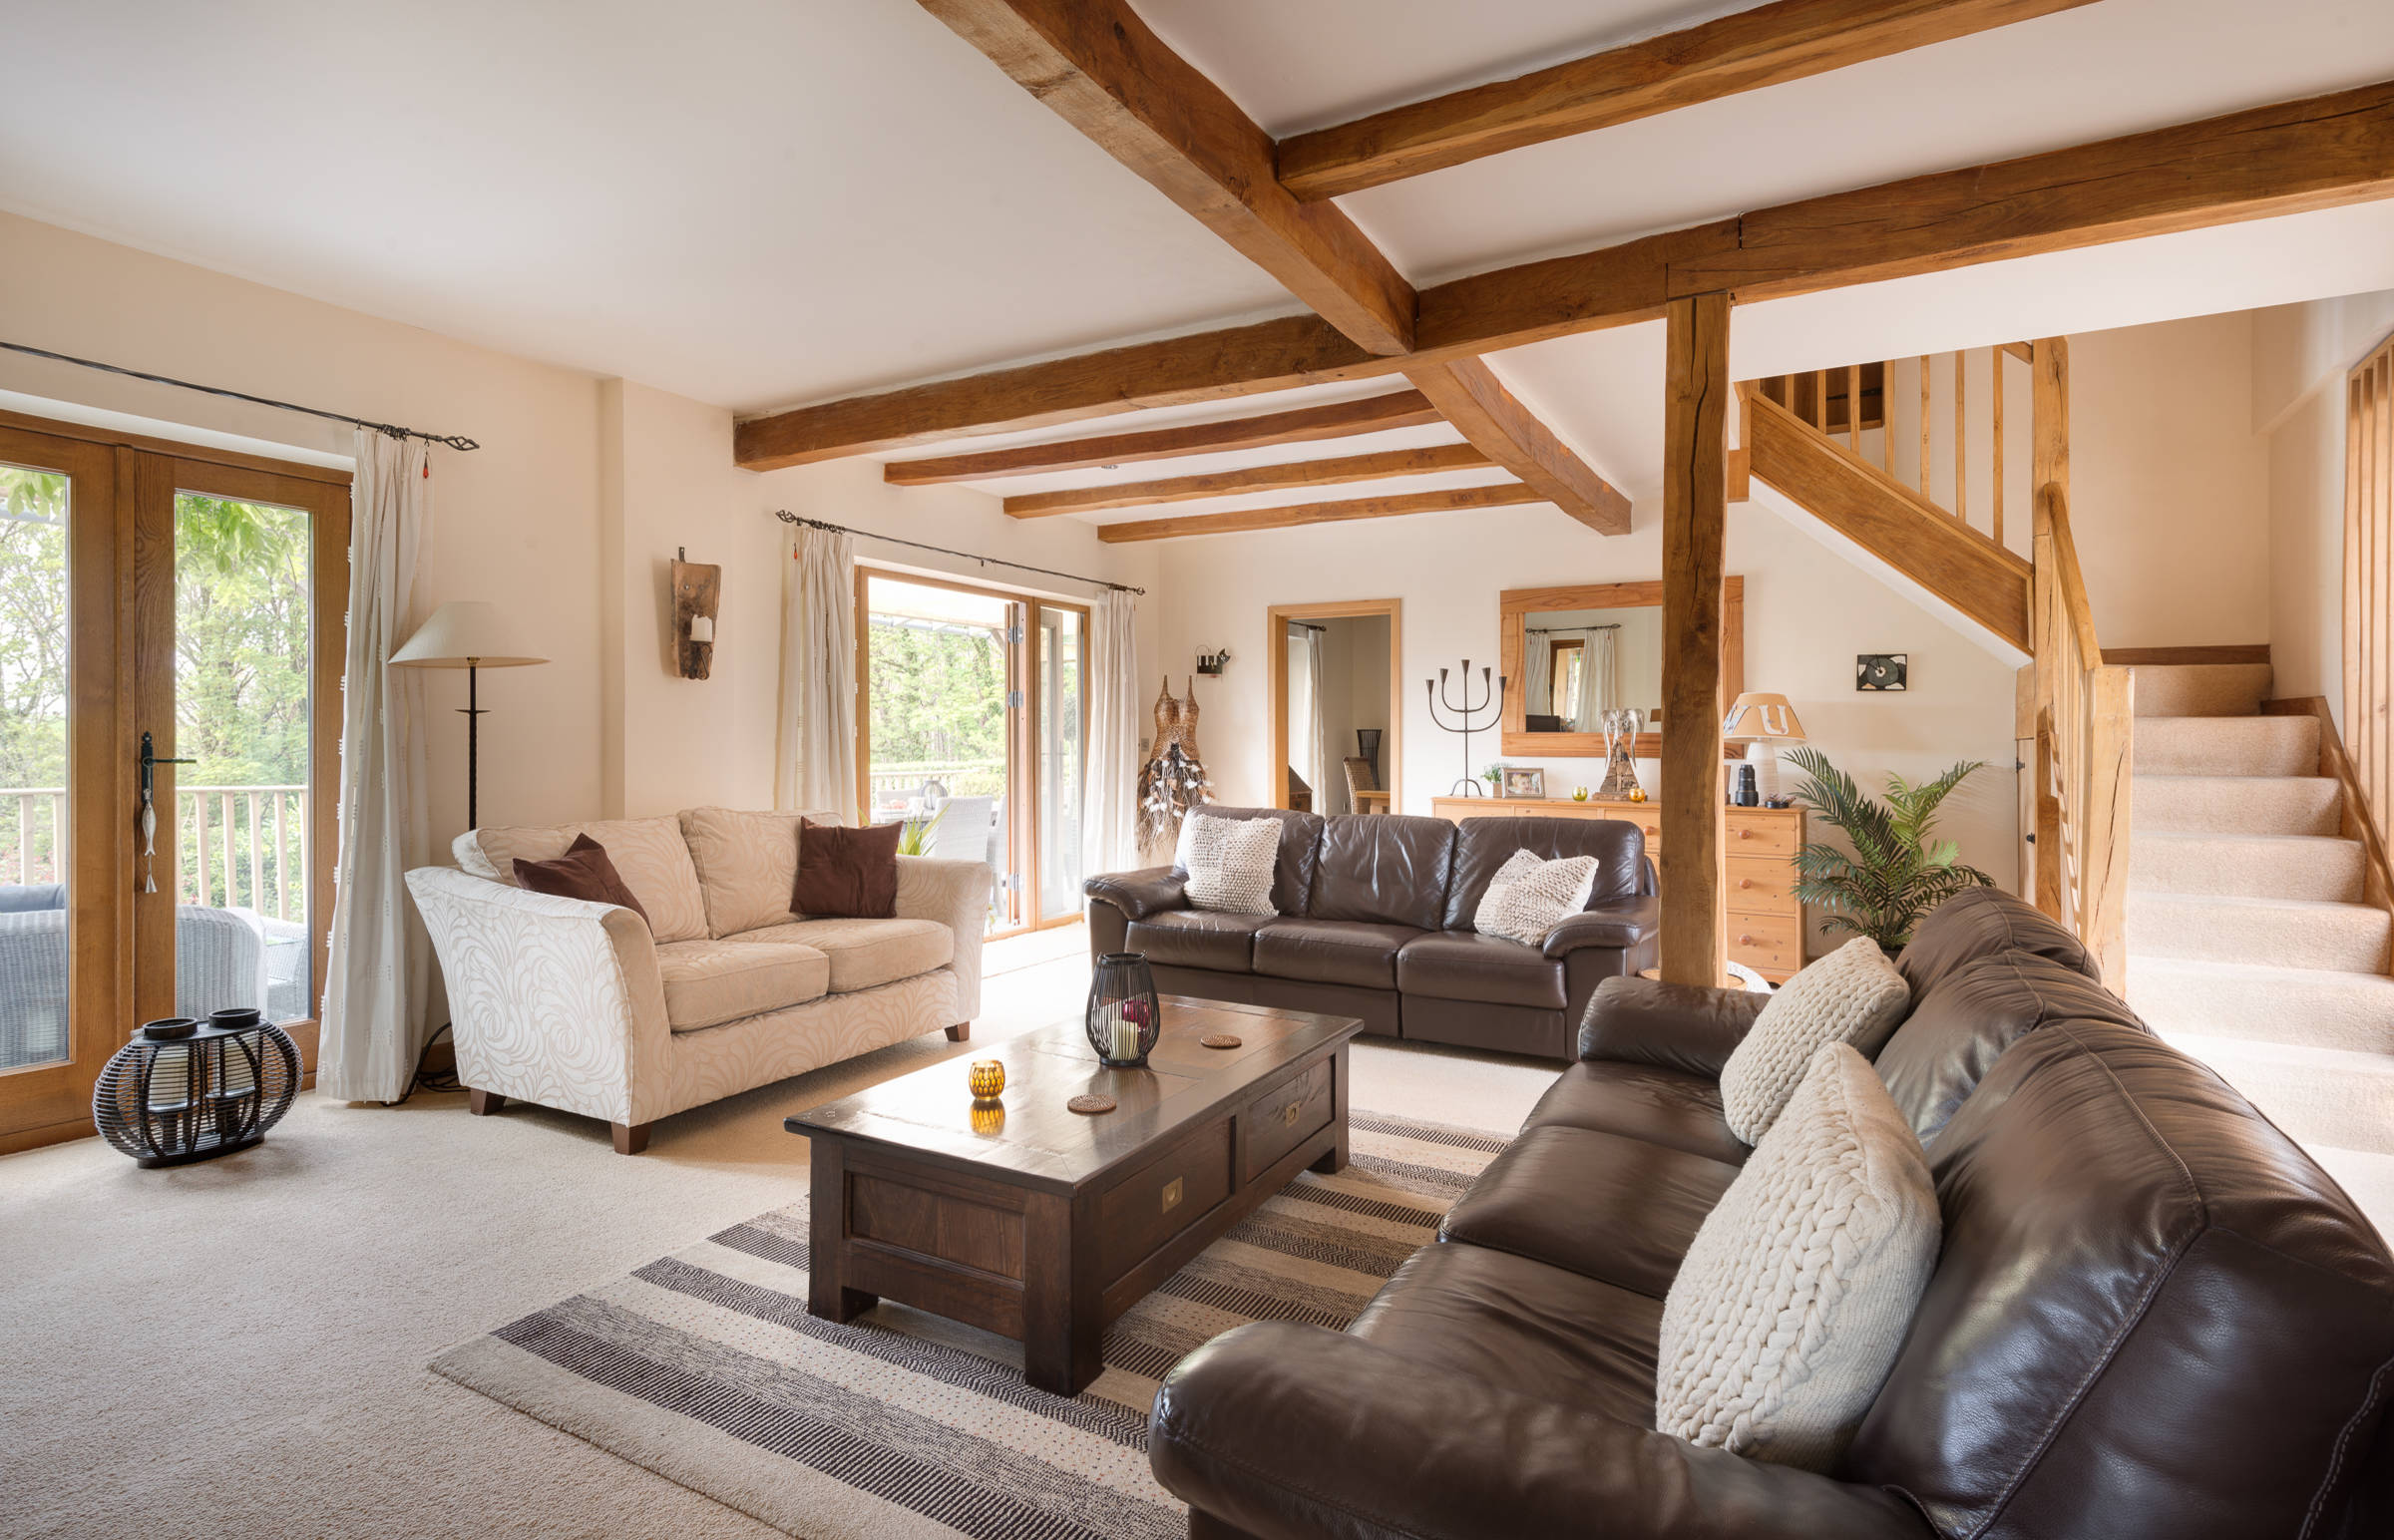 7 Most Attractive Living Room Color Ideas For Brown Furniture In Your Very Own Space Jimenezphoto,Magnolia Farms Waco Tx Hours